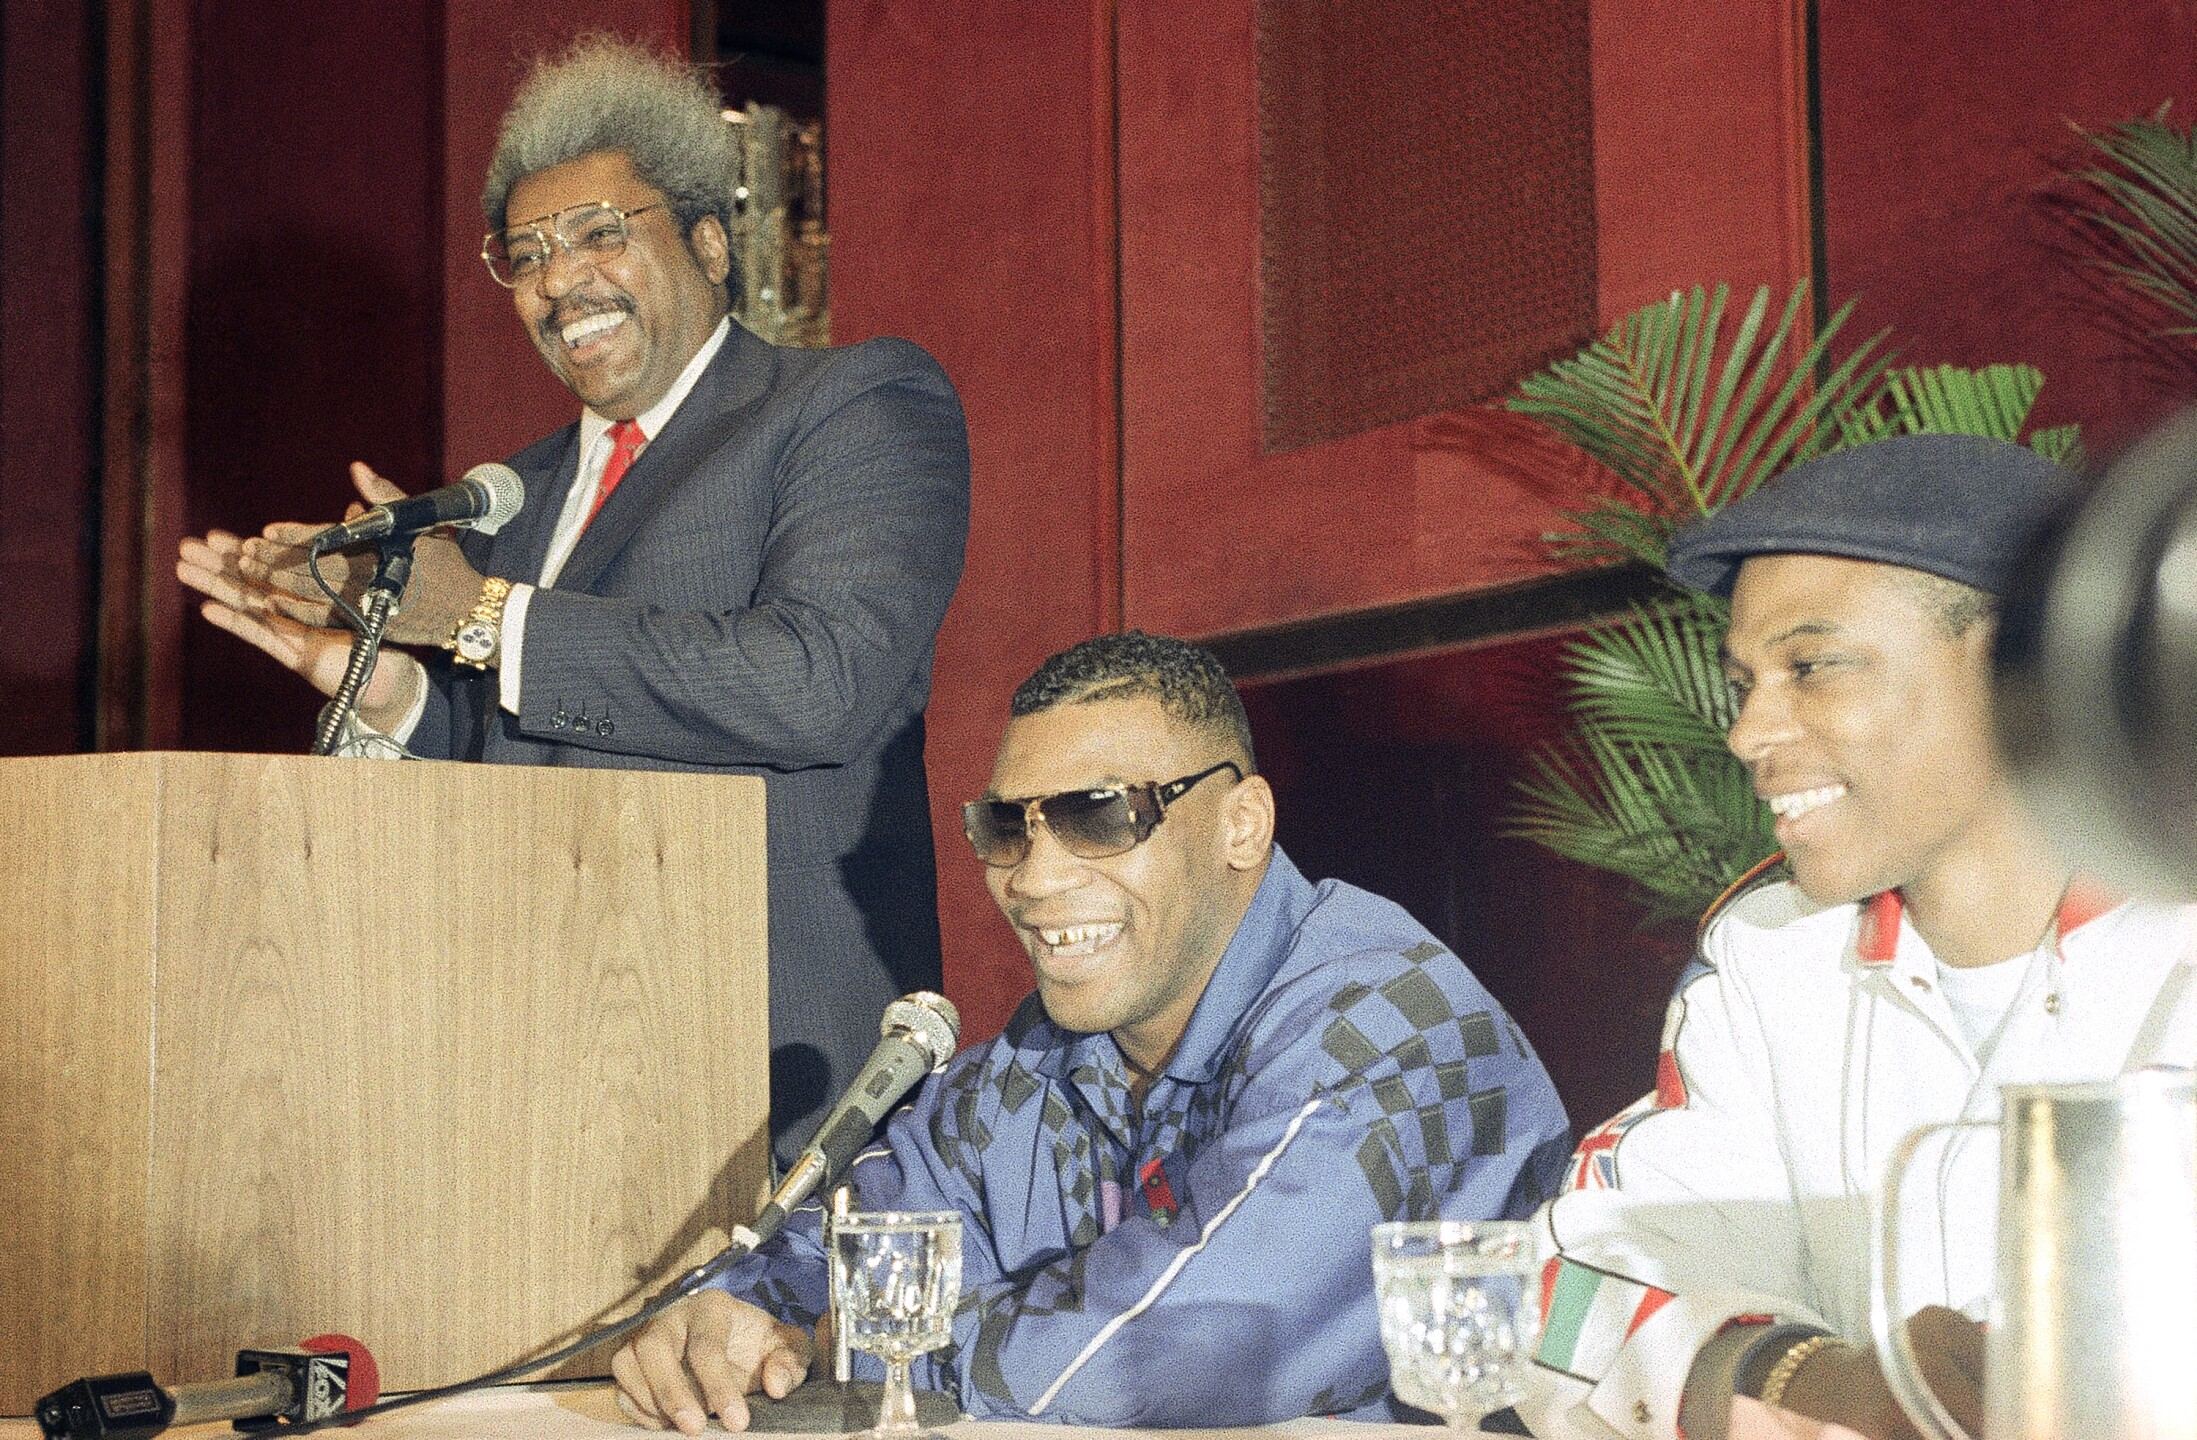 Mike Tyson, Don King